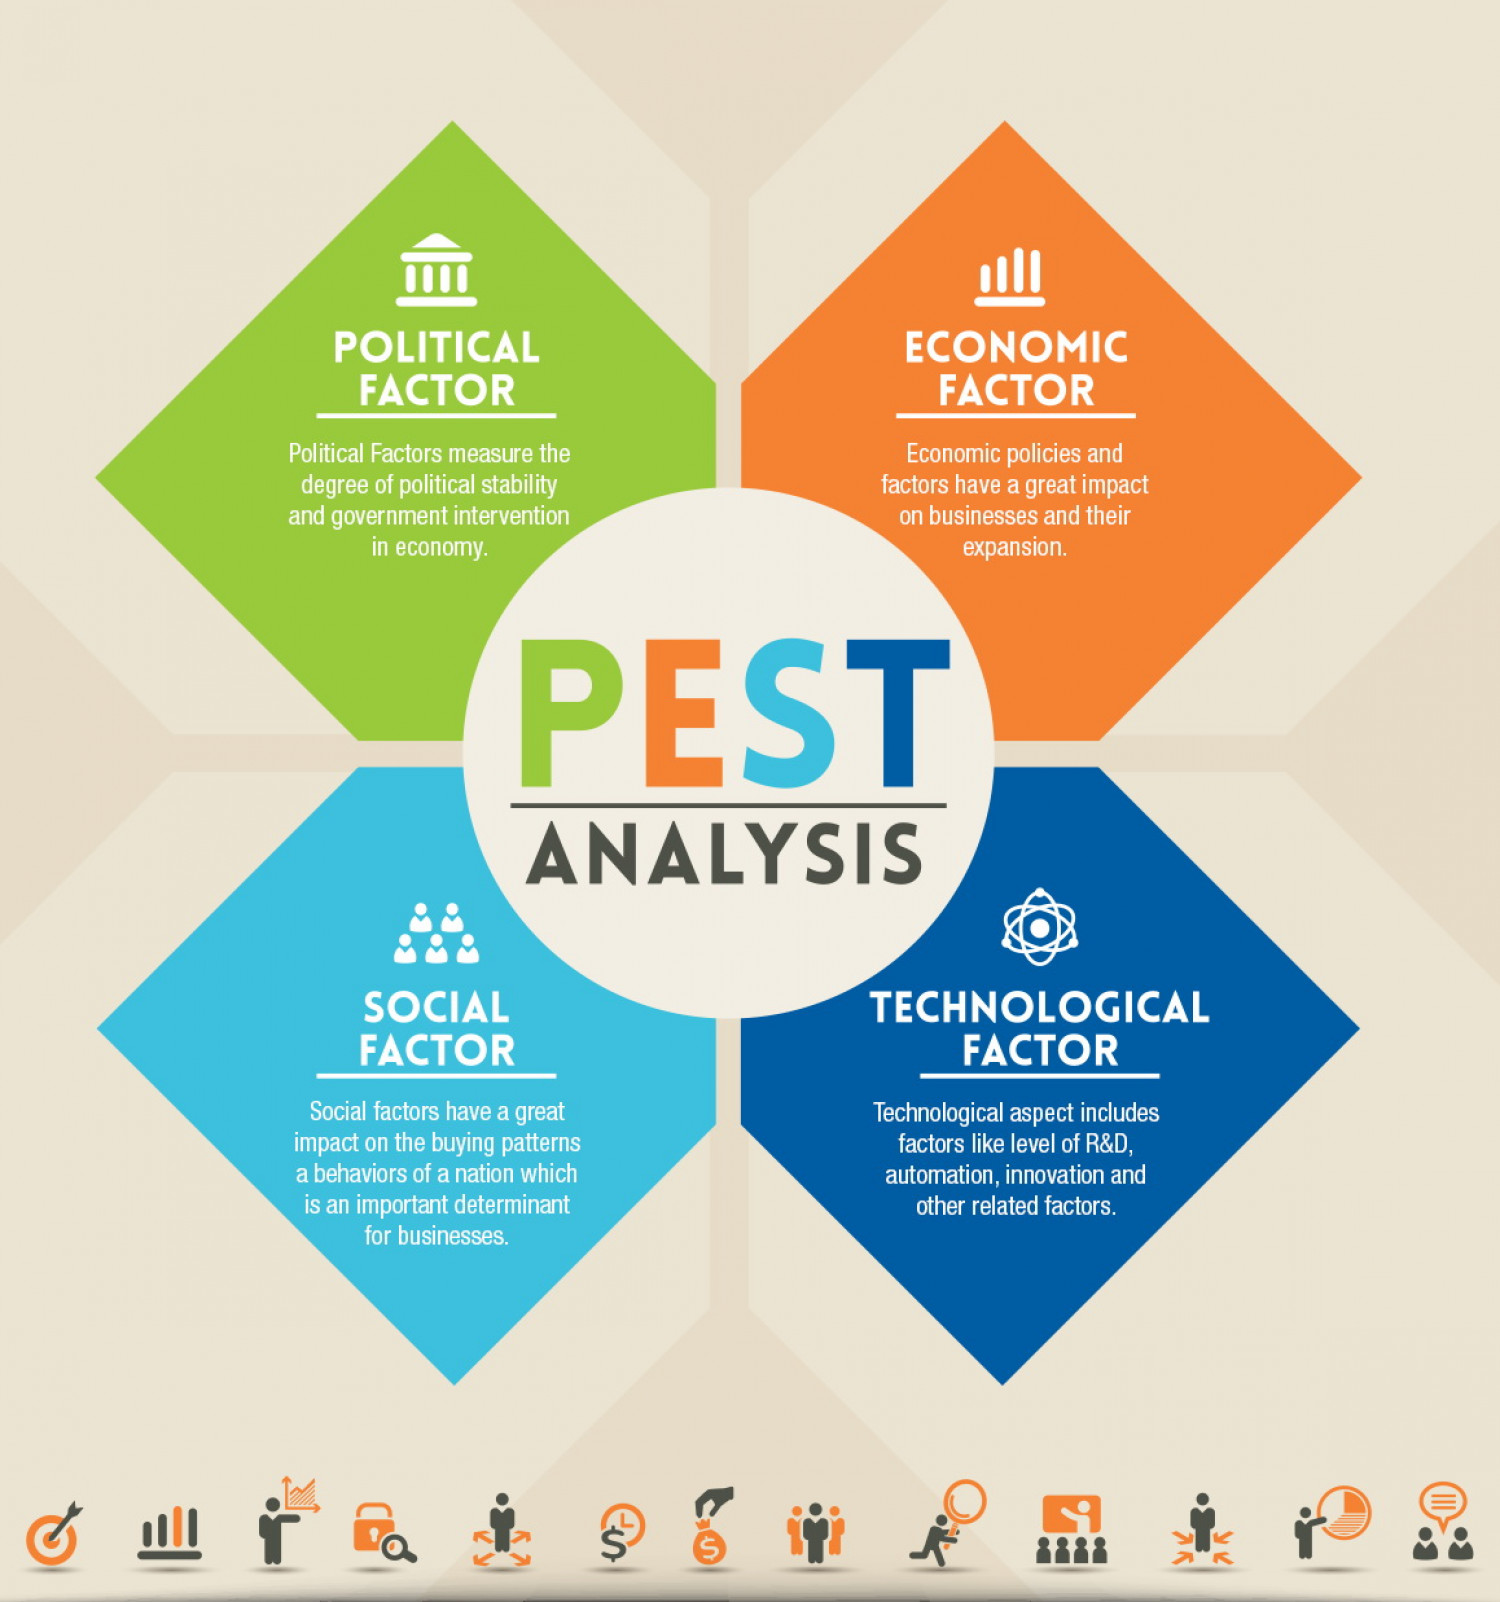 pest analysis overview Pest analysis • porter's five forces analysis • four corner's analysis • value  chain analysis • early warning scans • war gaming an overview of these  strategic.